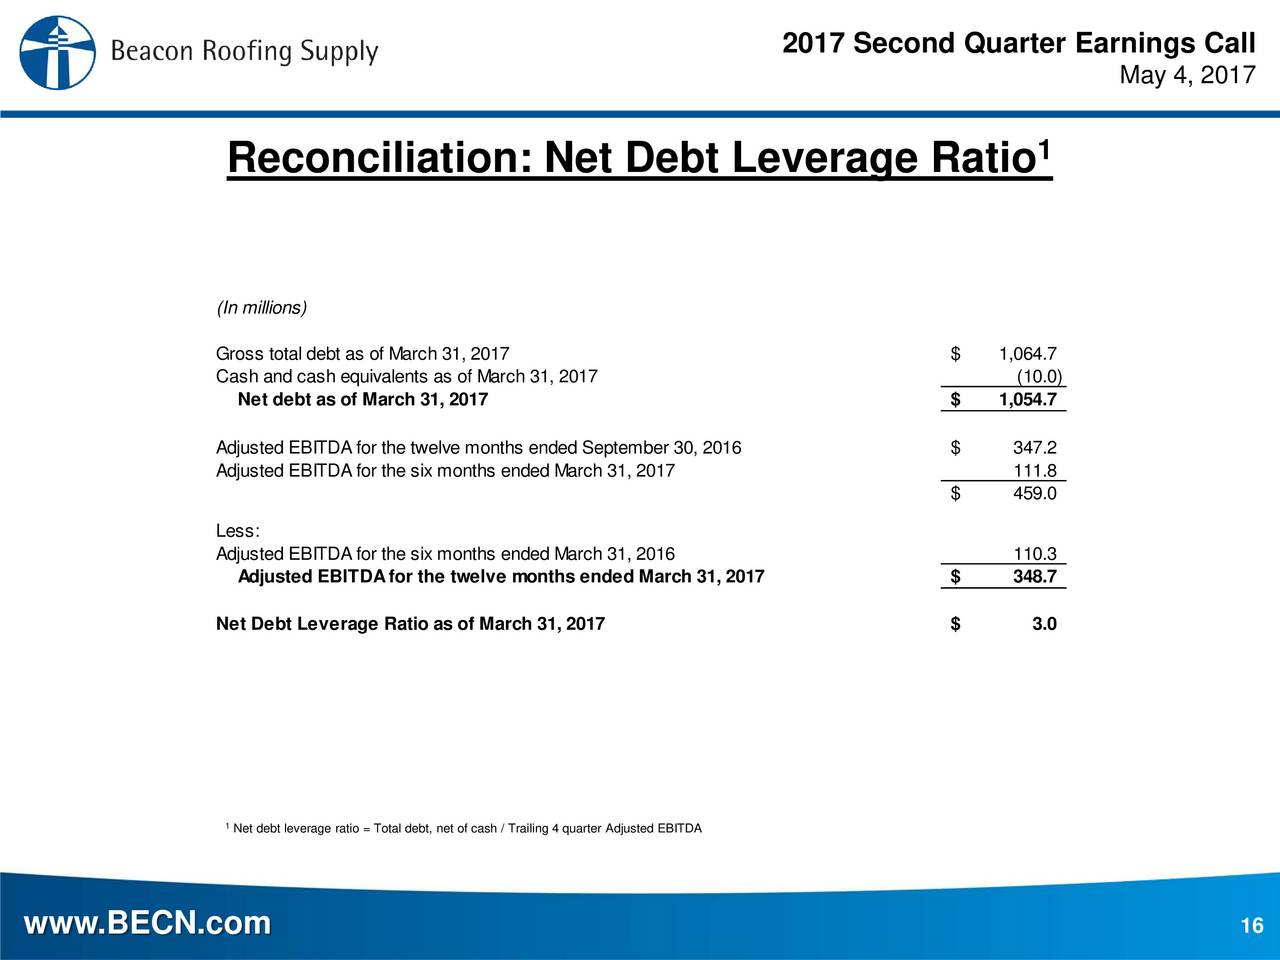 Beacon Roofing Supply, Inc. 2017 Q2   Results   Earnings Call Slides   Beacon  Roofing Supply, Inc. (NASDAQ:BECN) | Seeking Alpha